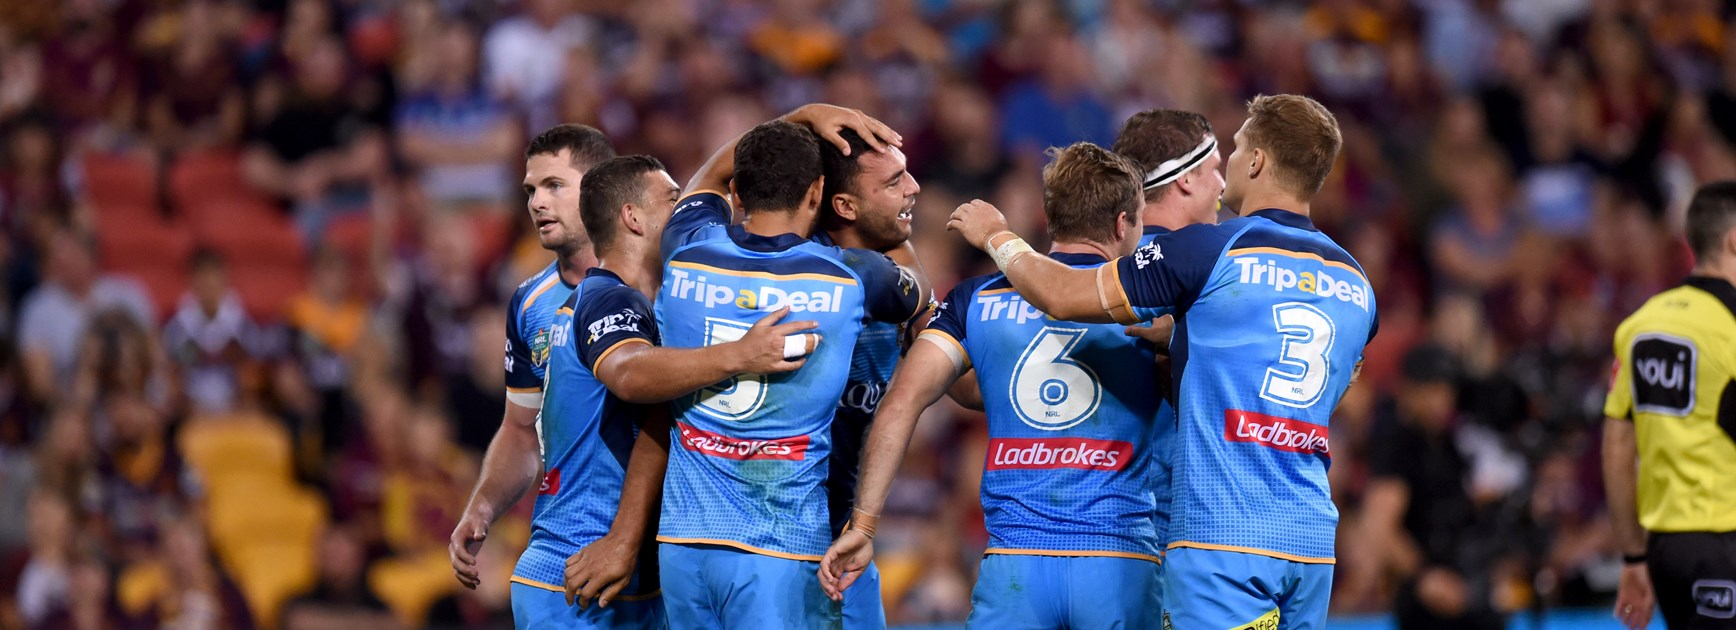 The Gold Coast Titans.